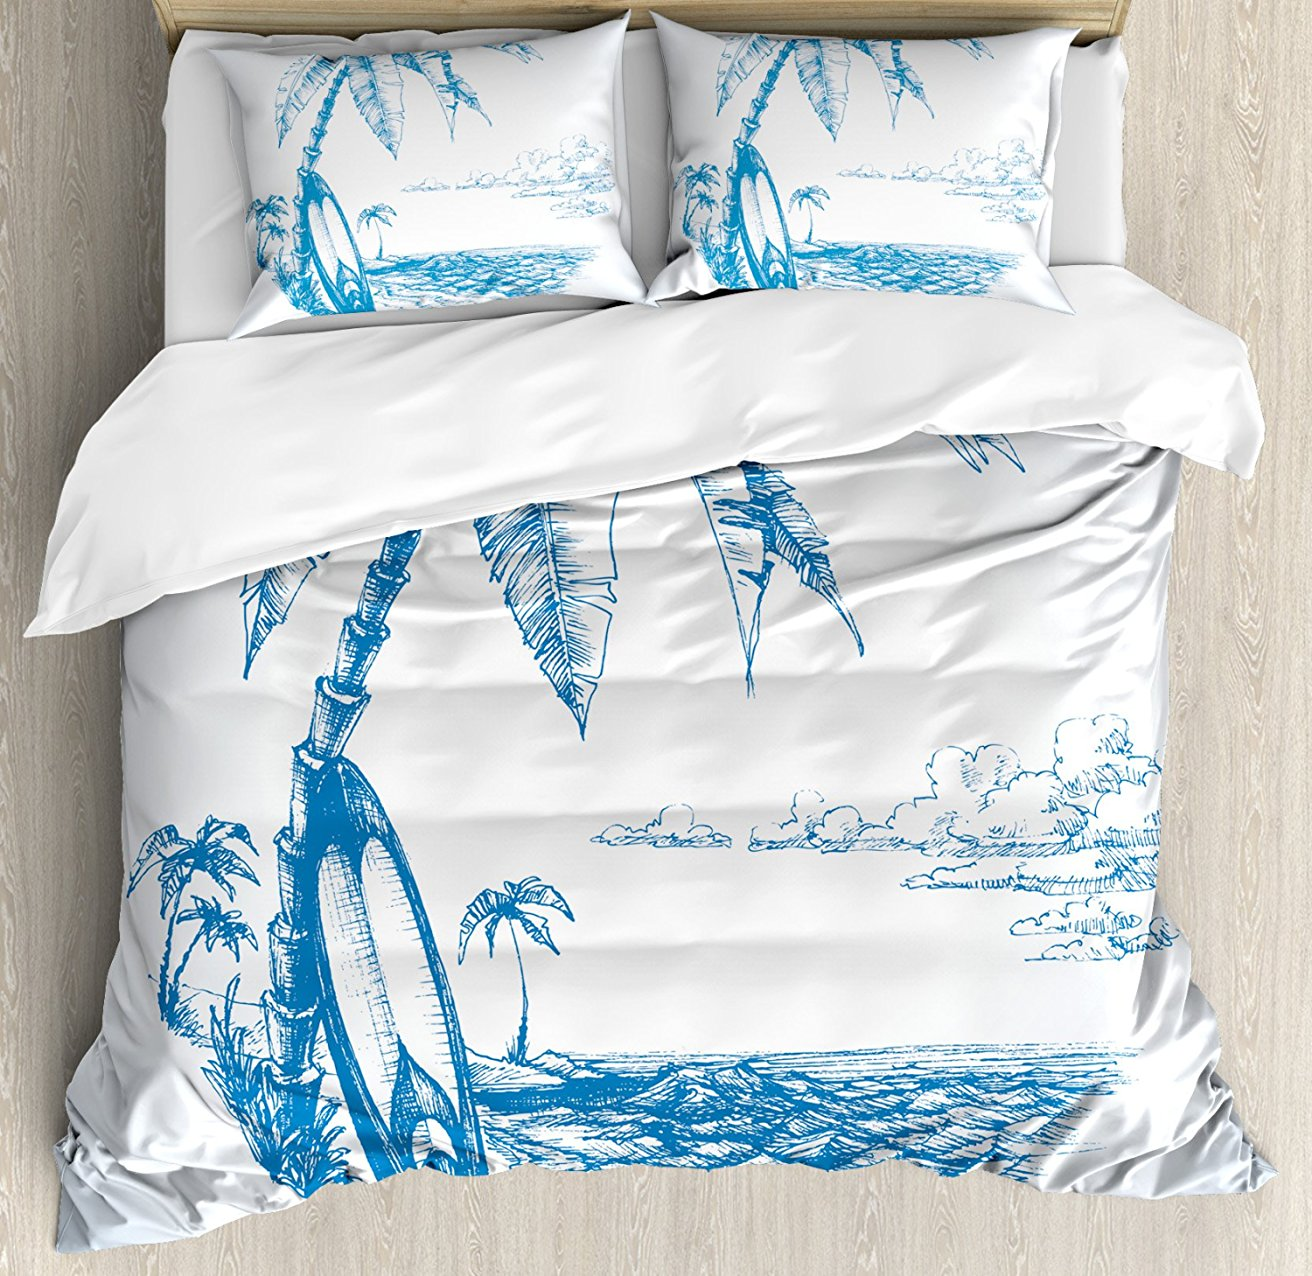 Home & Garden Home Textile Tropical Duvet Cover Set Modern Illustration Of A Tropical Beach With Palm Trees And Hammock Hawaiian Relax 4 Piece Bedding Set